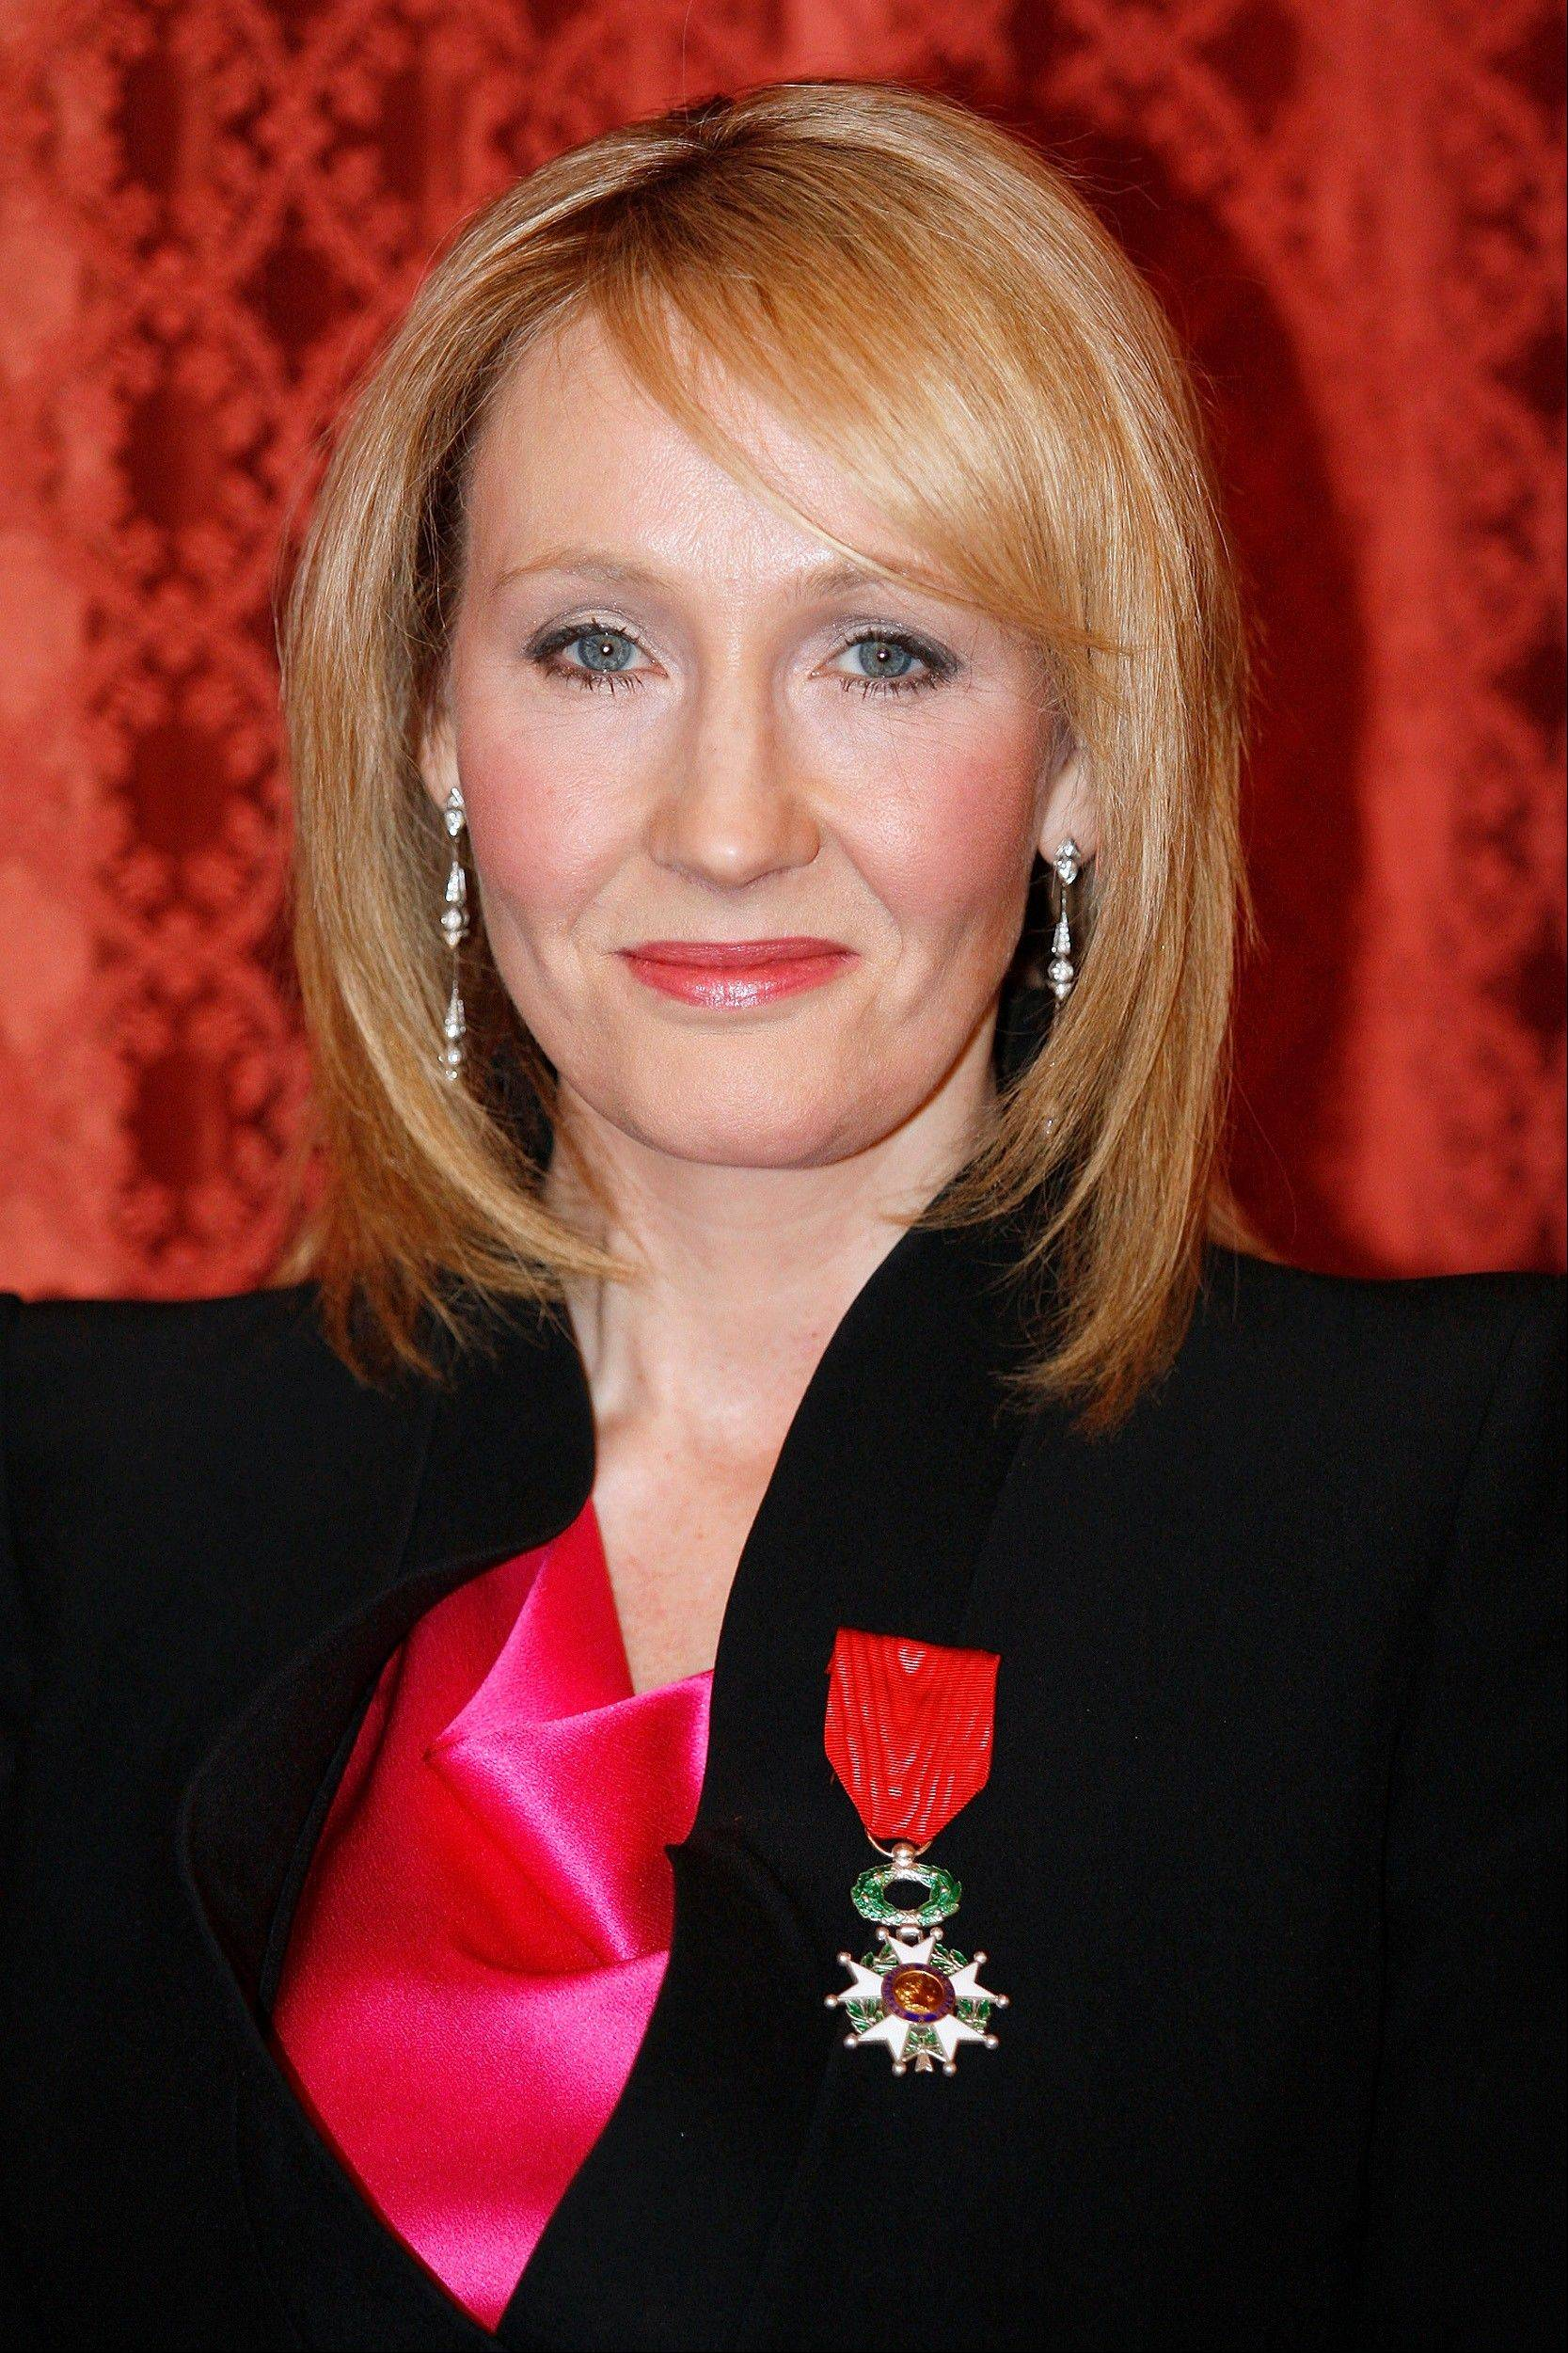 J.K. Rowling not ruling out another Potter book